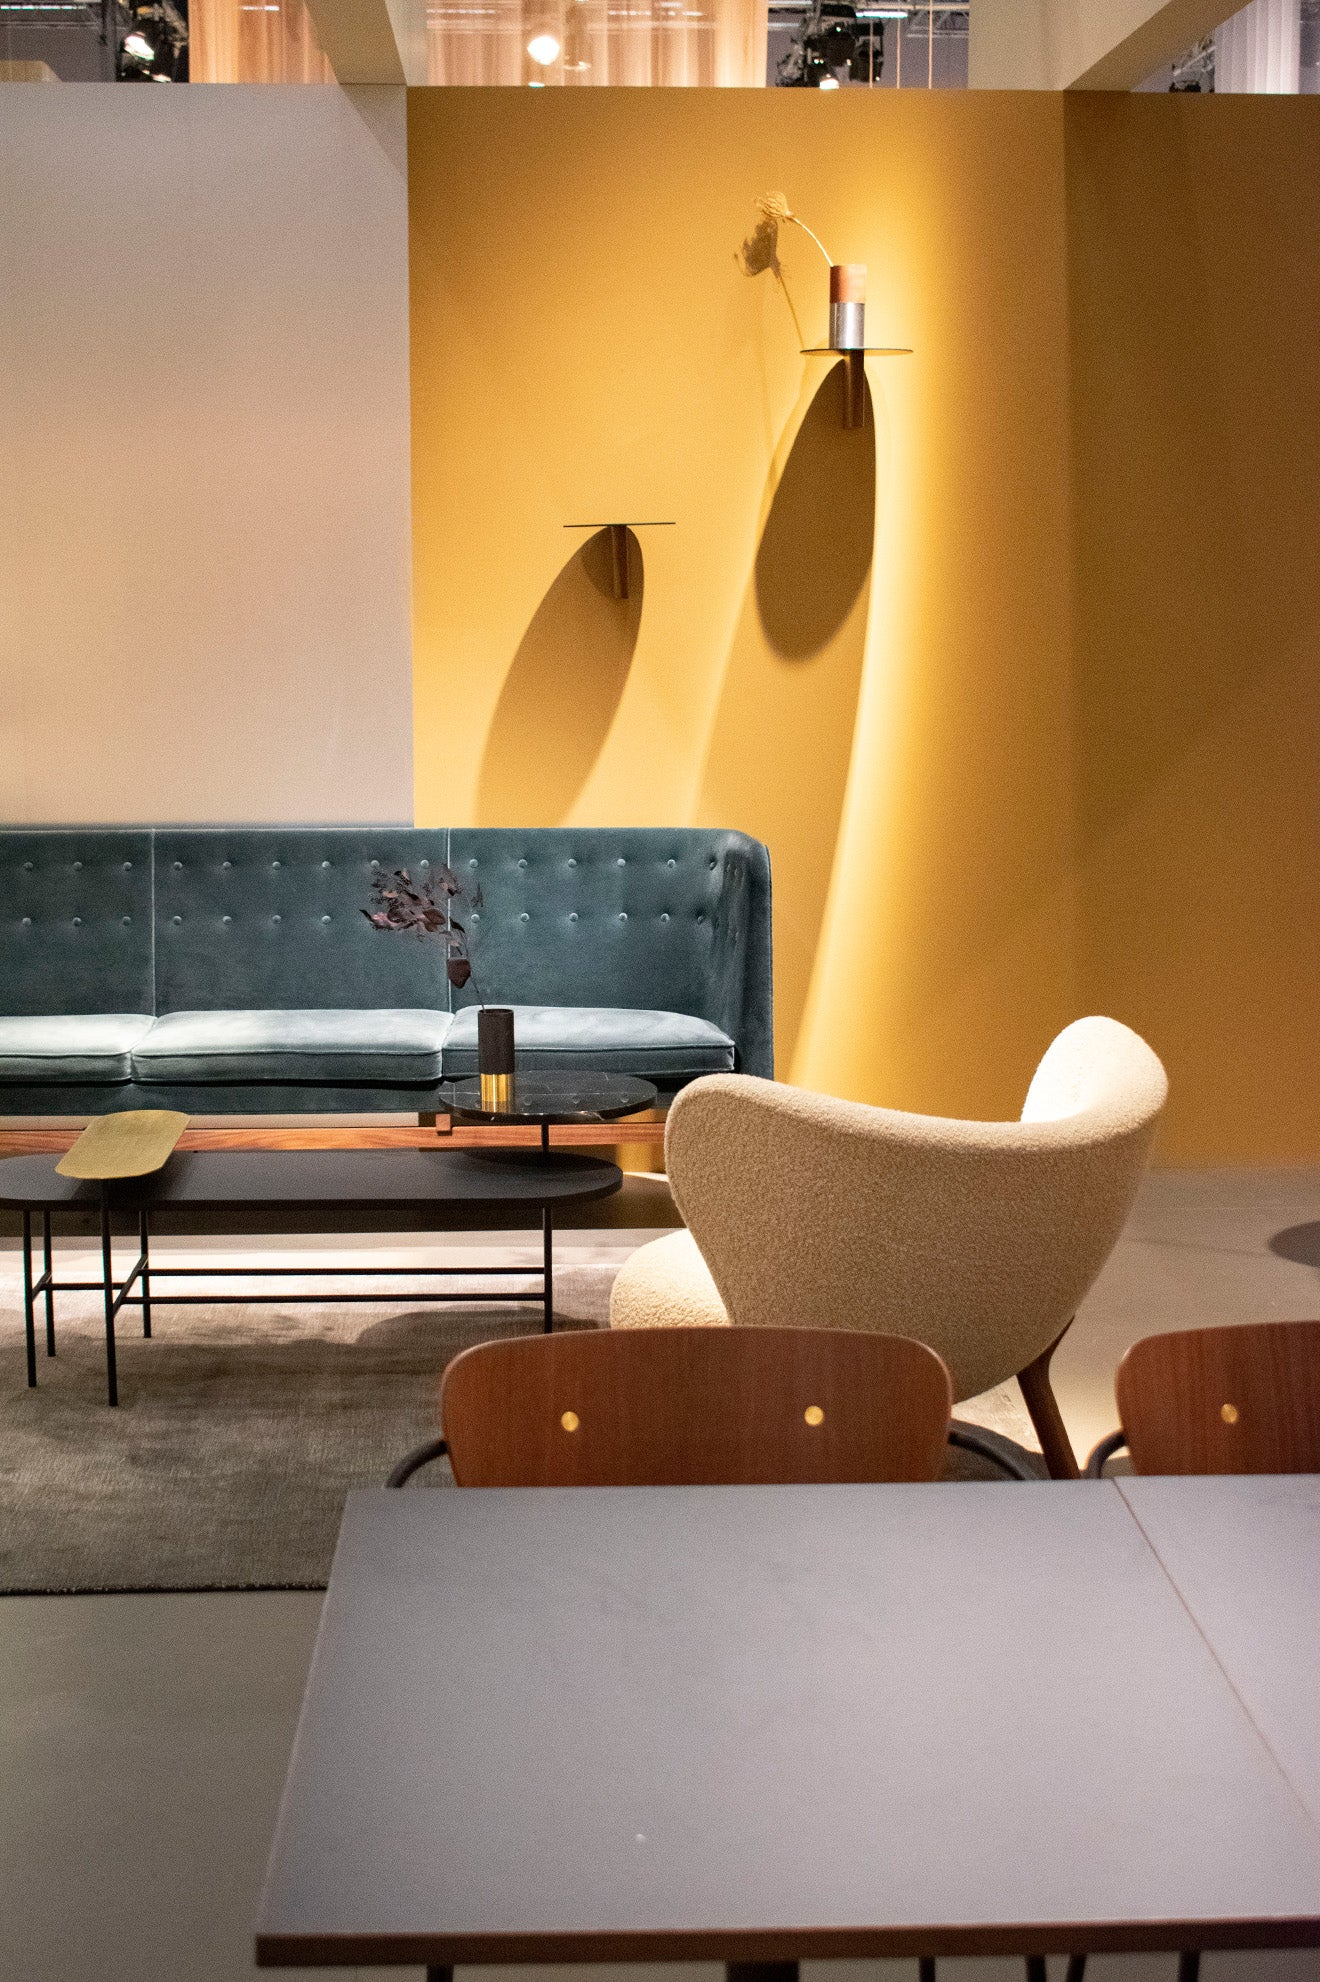 And Tradition on display at the 2019 Stockholm Furniture Fair